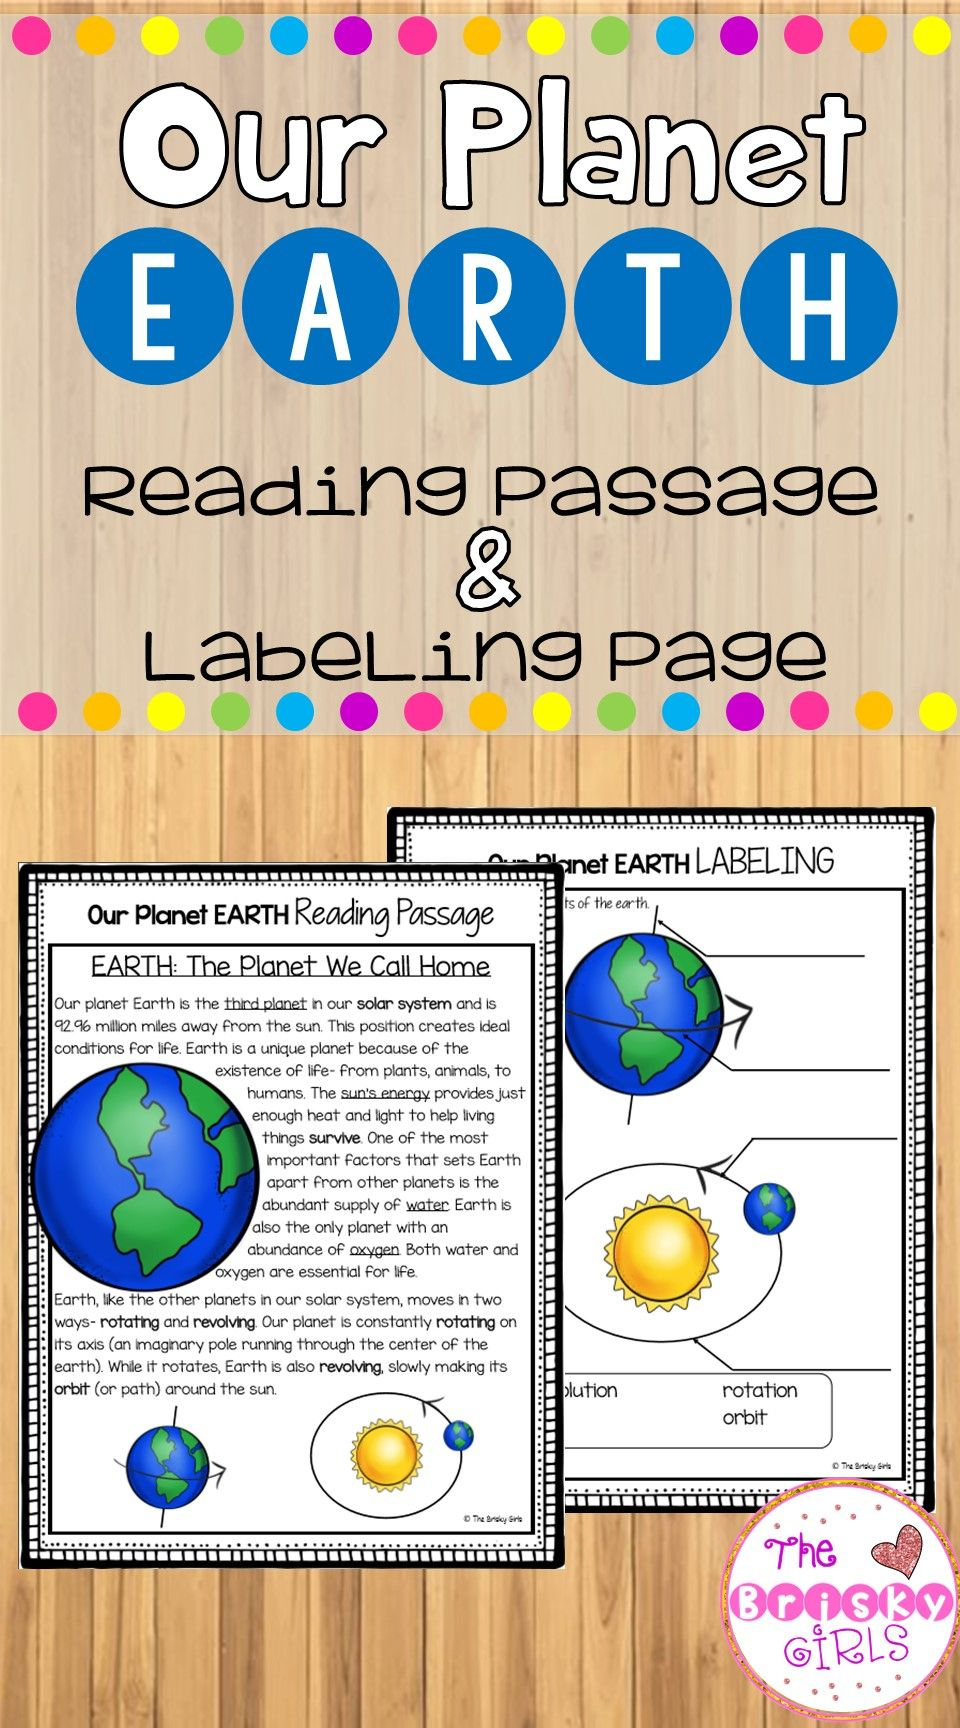 All About The Earth Reading Passage Includes Details On How Our Planet Is Unique With Important Features Like W Reading Passages Our Planet Earth Teacher Help [ 1728 x 960 Pixel ]